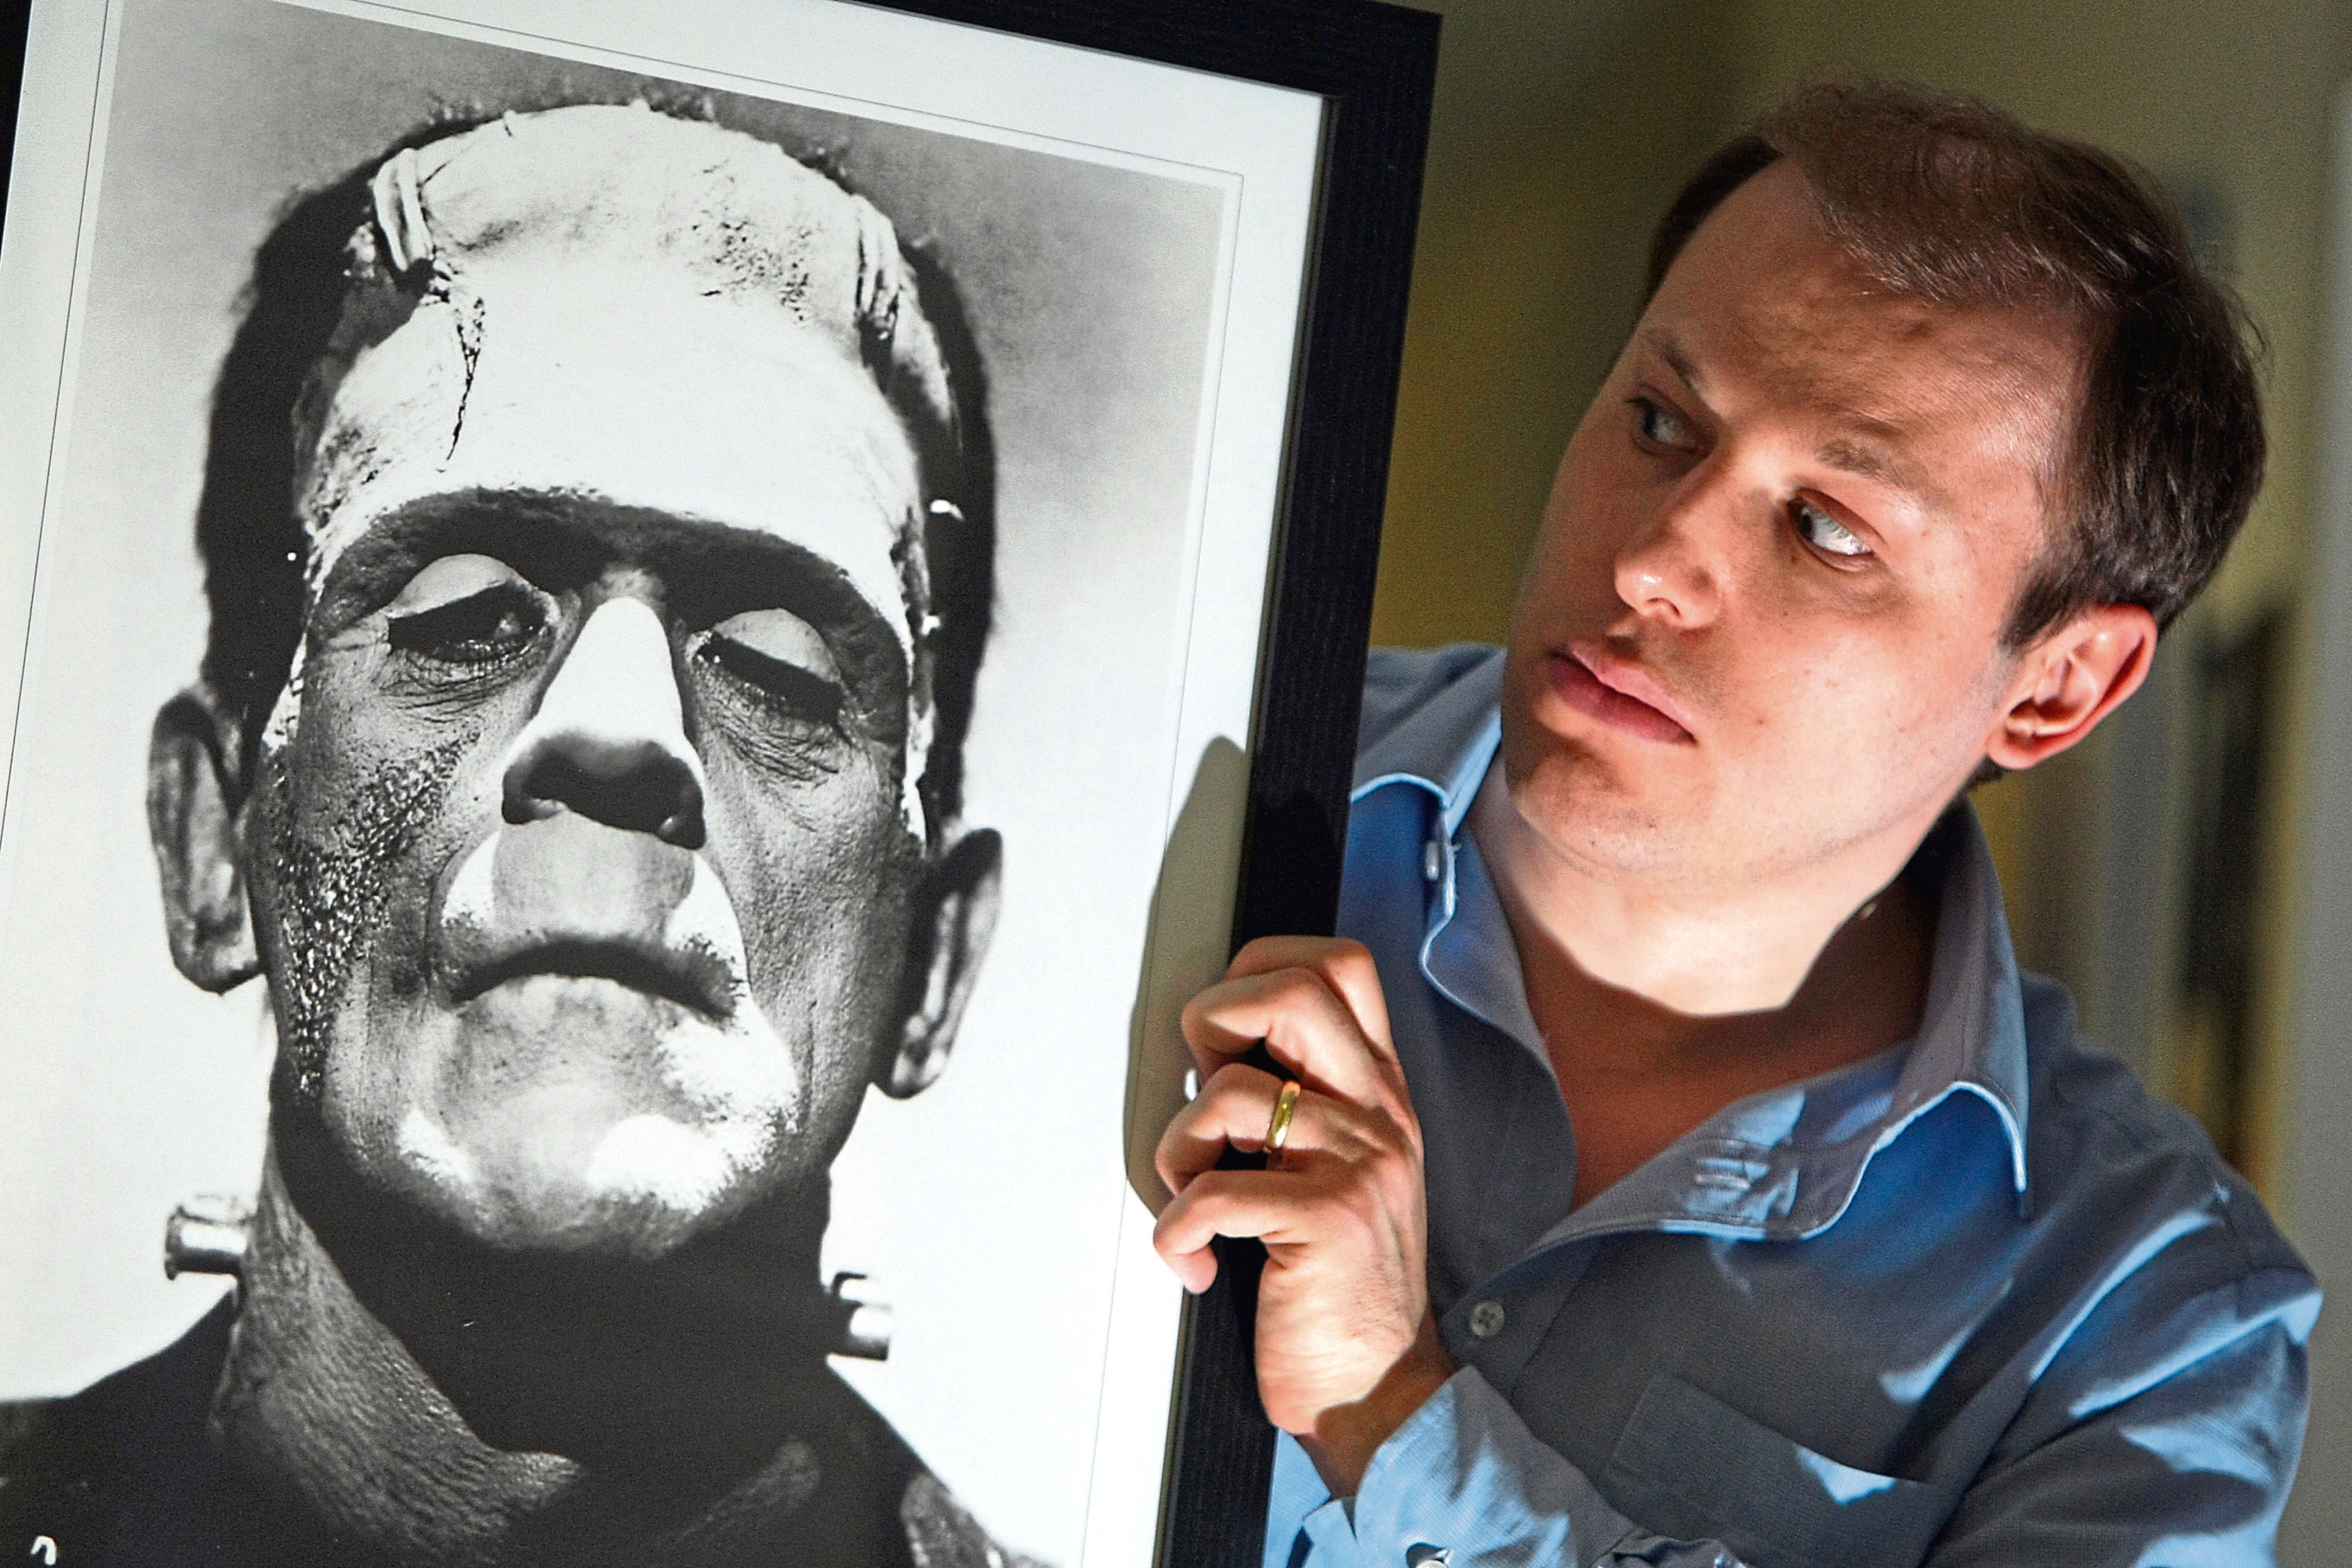 Kris Miller, Courier, 09/11/15. Picture today at University of Dundee shows Dr Daniel Cook, Lecturer in English with a picture of Frankenstein's Monster. Being Human Festival 2015 is set to run from 12th - 22nd Nov with Mary Shelley's formative experiences in Dundee being revisited as part of the festival.